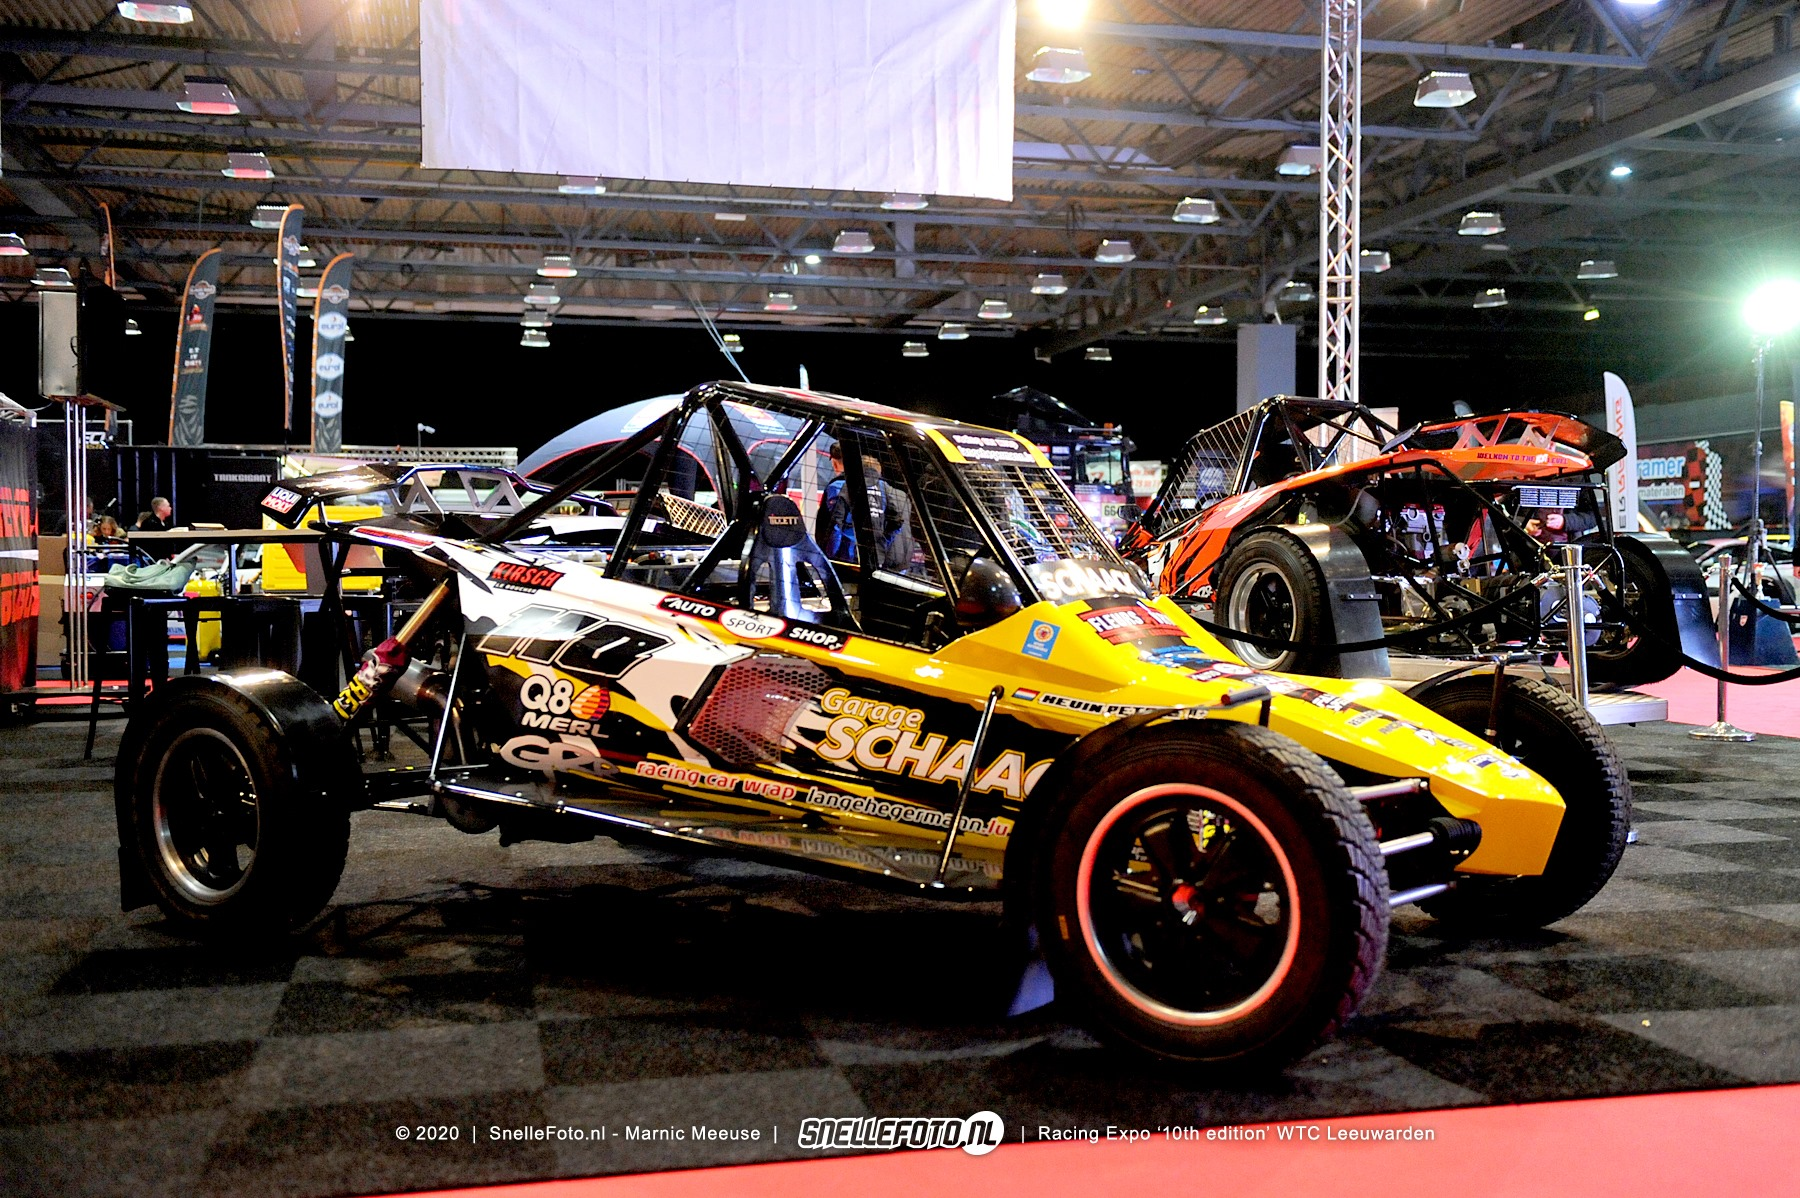 Kevin Peters Racing Team auf der Rennsport Expo in Leeuwarden